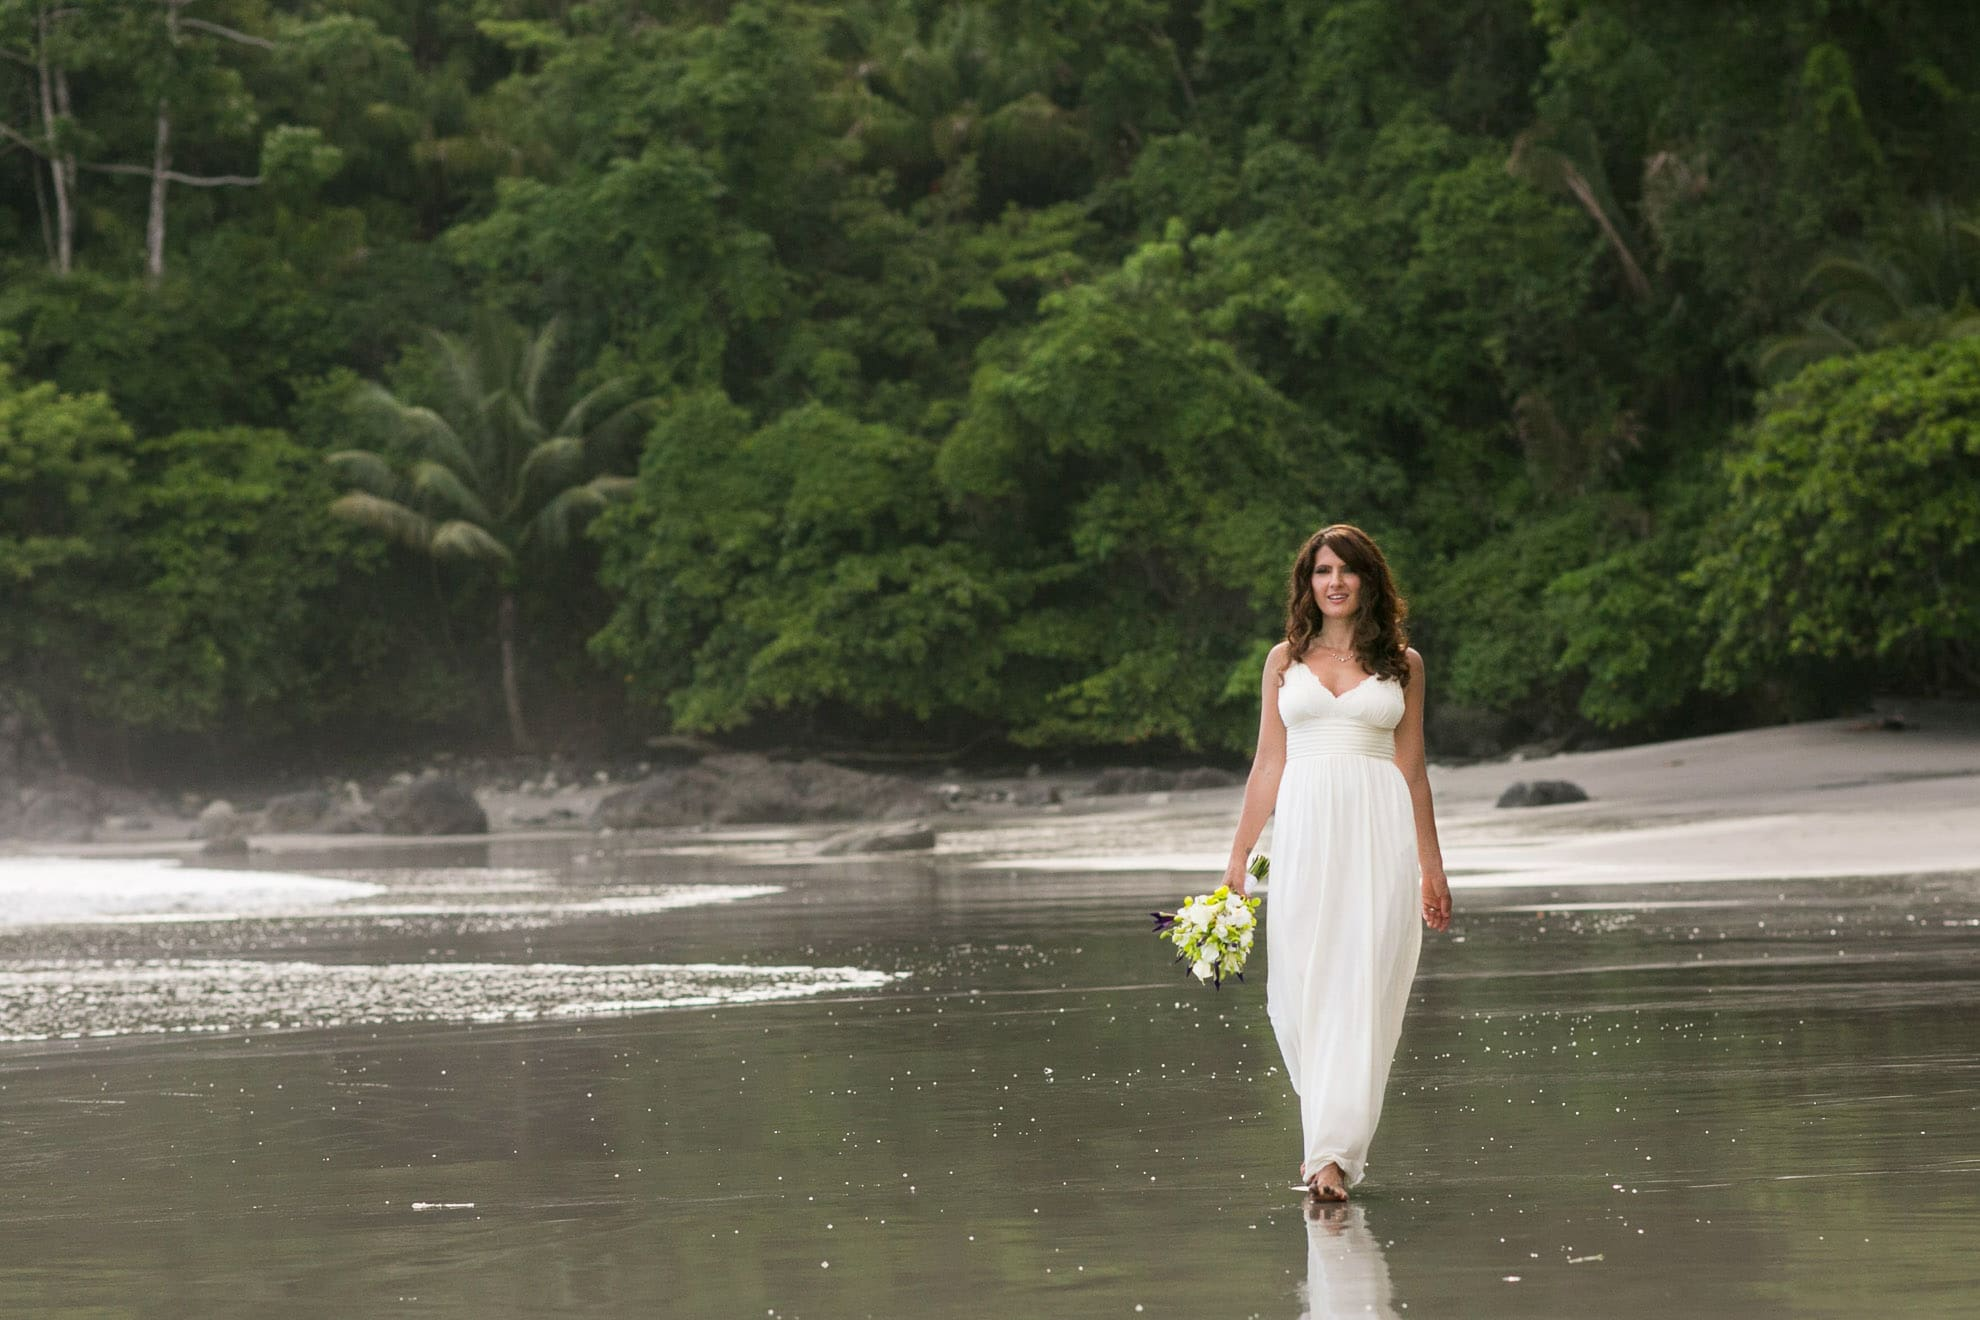 Bride walking on beach in Arenas del Mar.